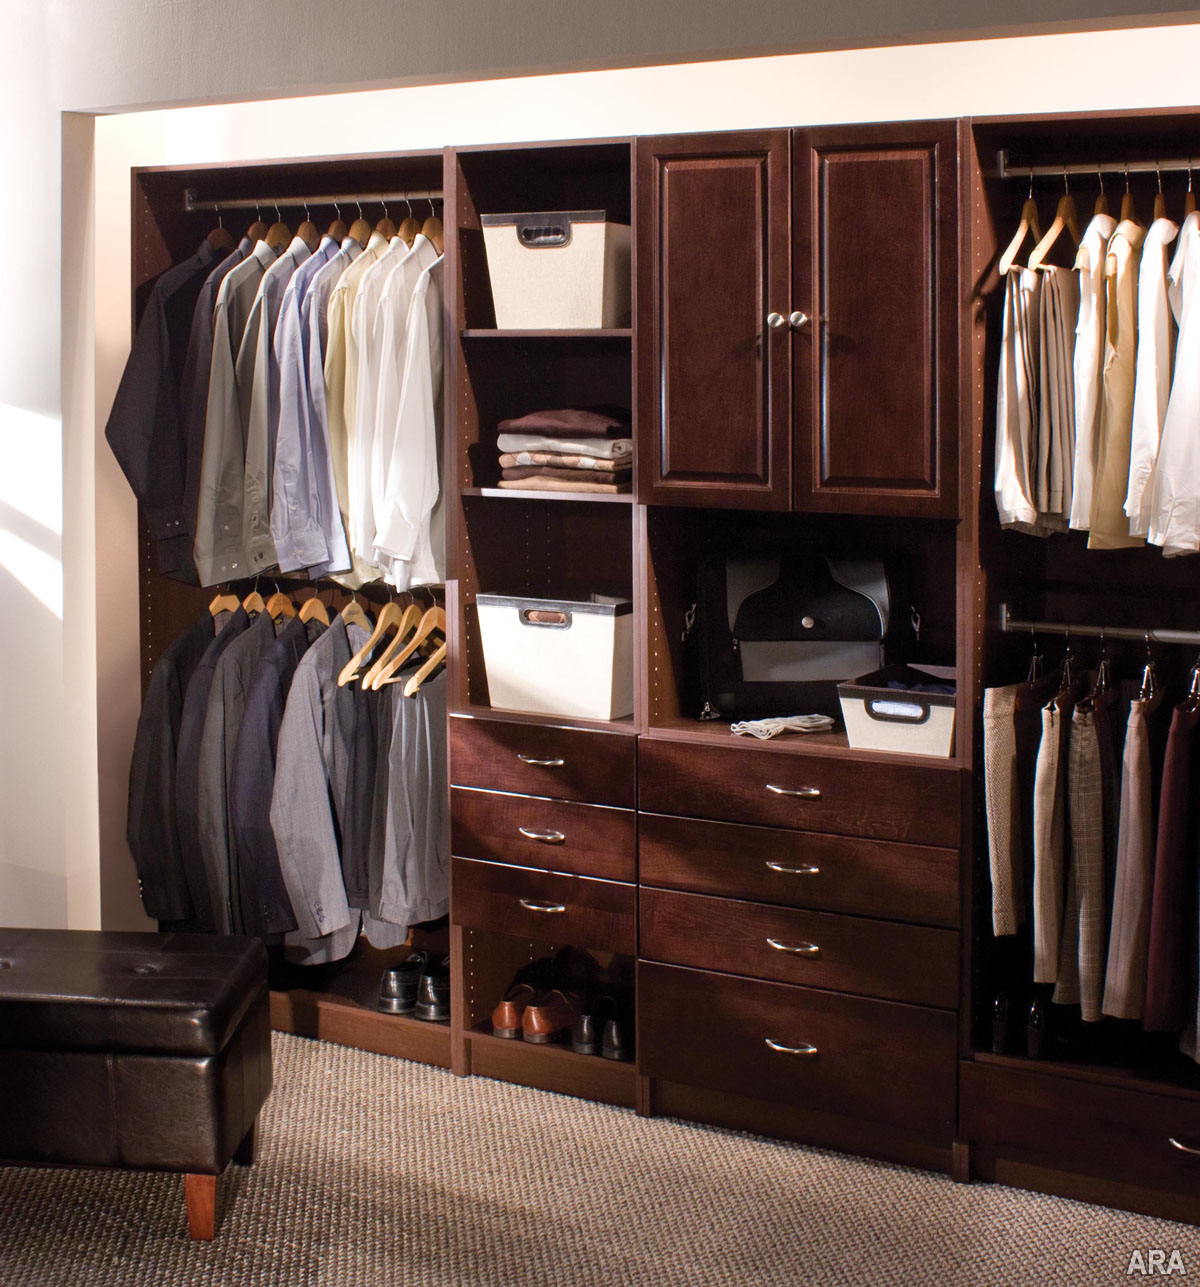 Masculine Custom Closets Nyc With Wardrobe Shoes Storage From Hard Wood  Material With Jute Rug And